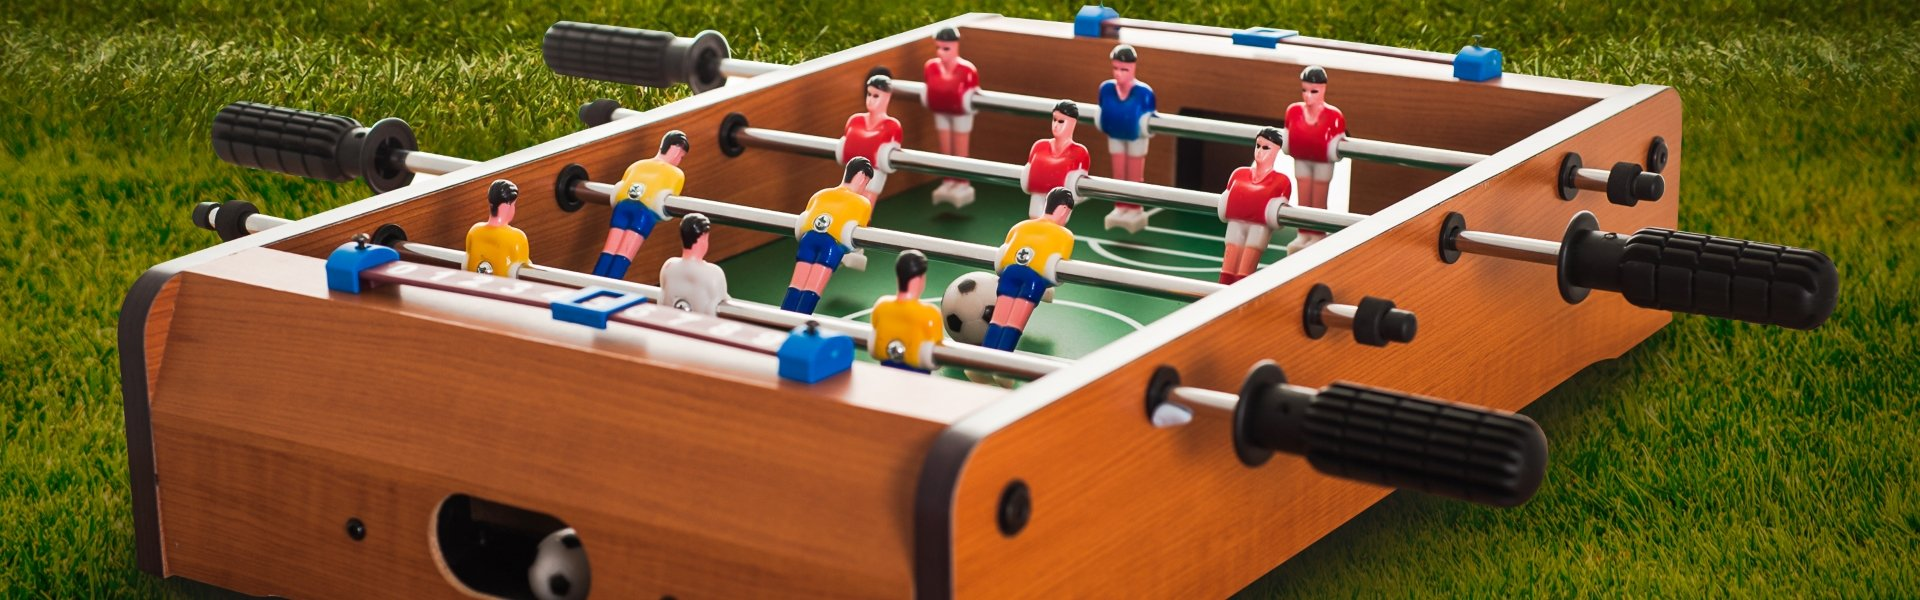 Best Mini Foosball Tables Reviewed in Detail